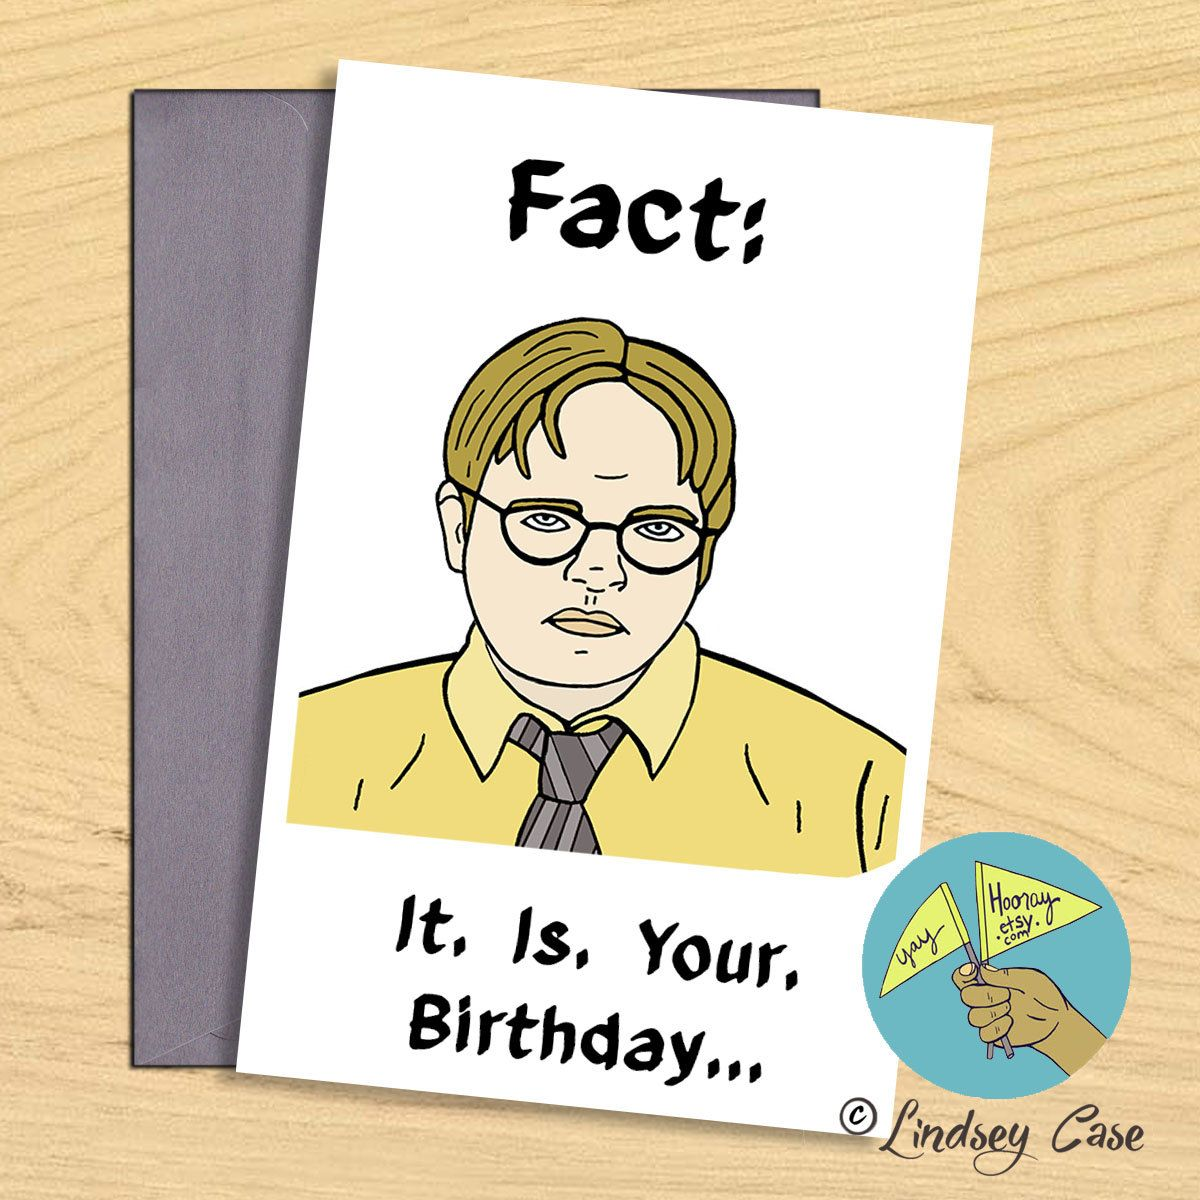 Fact it is your birthday dwight the office funny birthday card fact it is your birthday dwight the office funny birthday card bookmarktalkfo Gallery